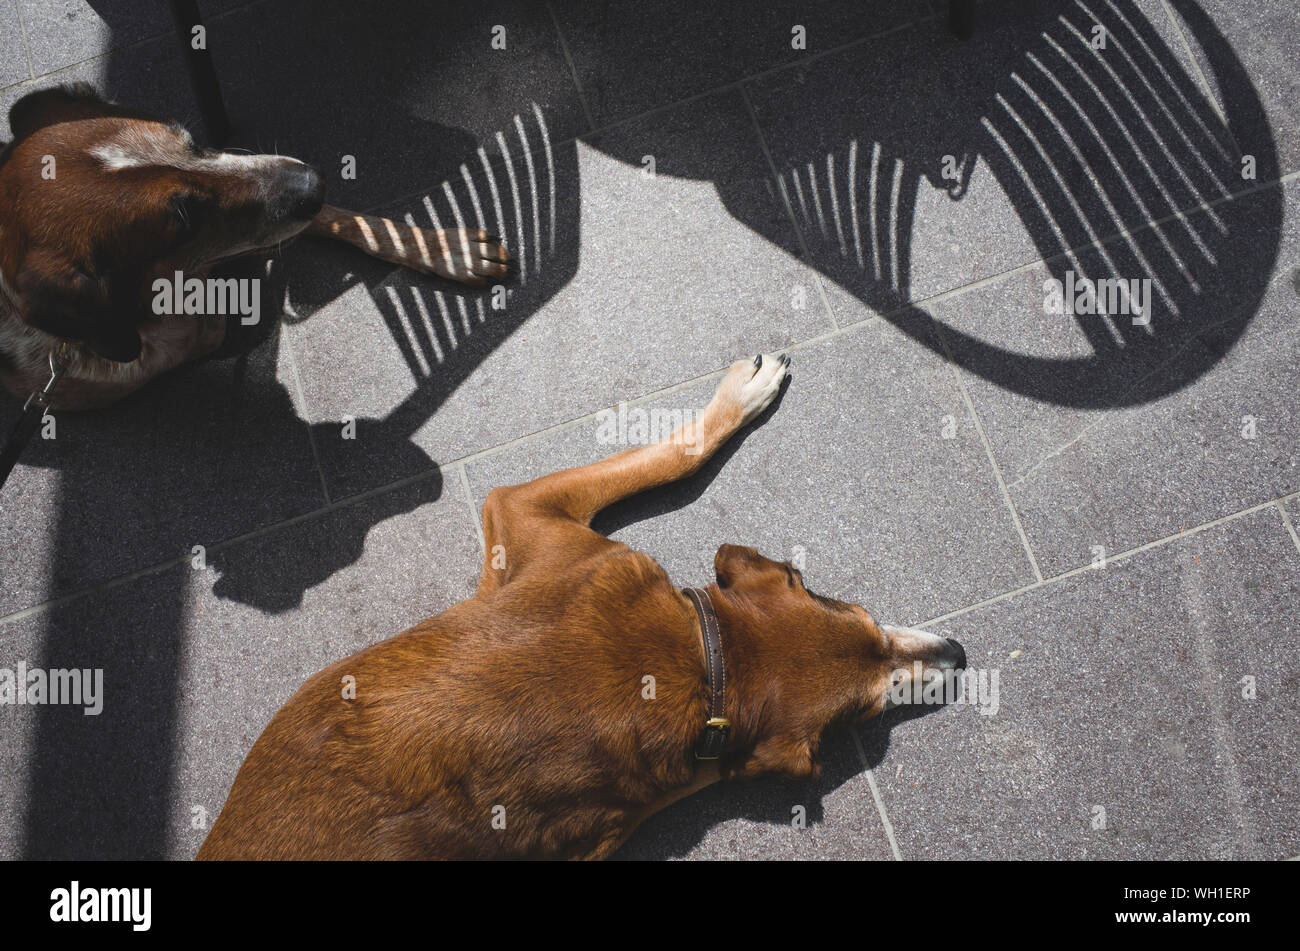 High Angle View Of Dogs Sleeping On Ground Stock Photo